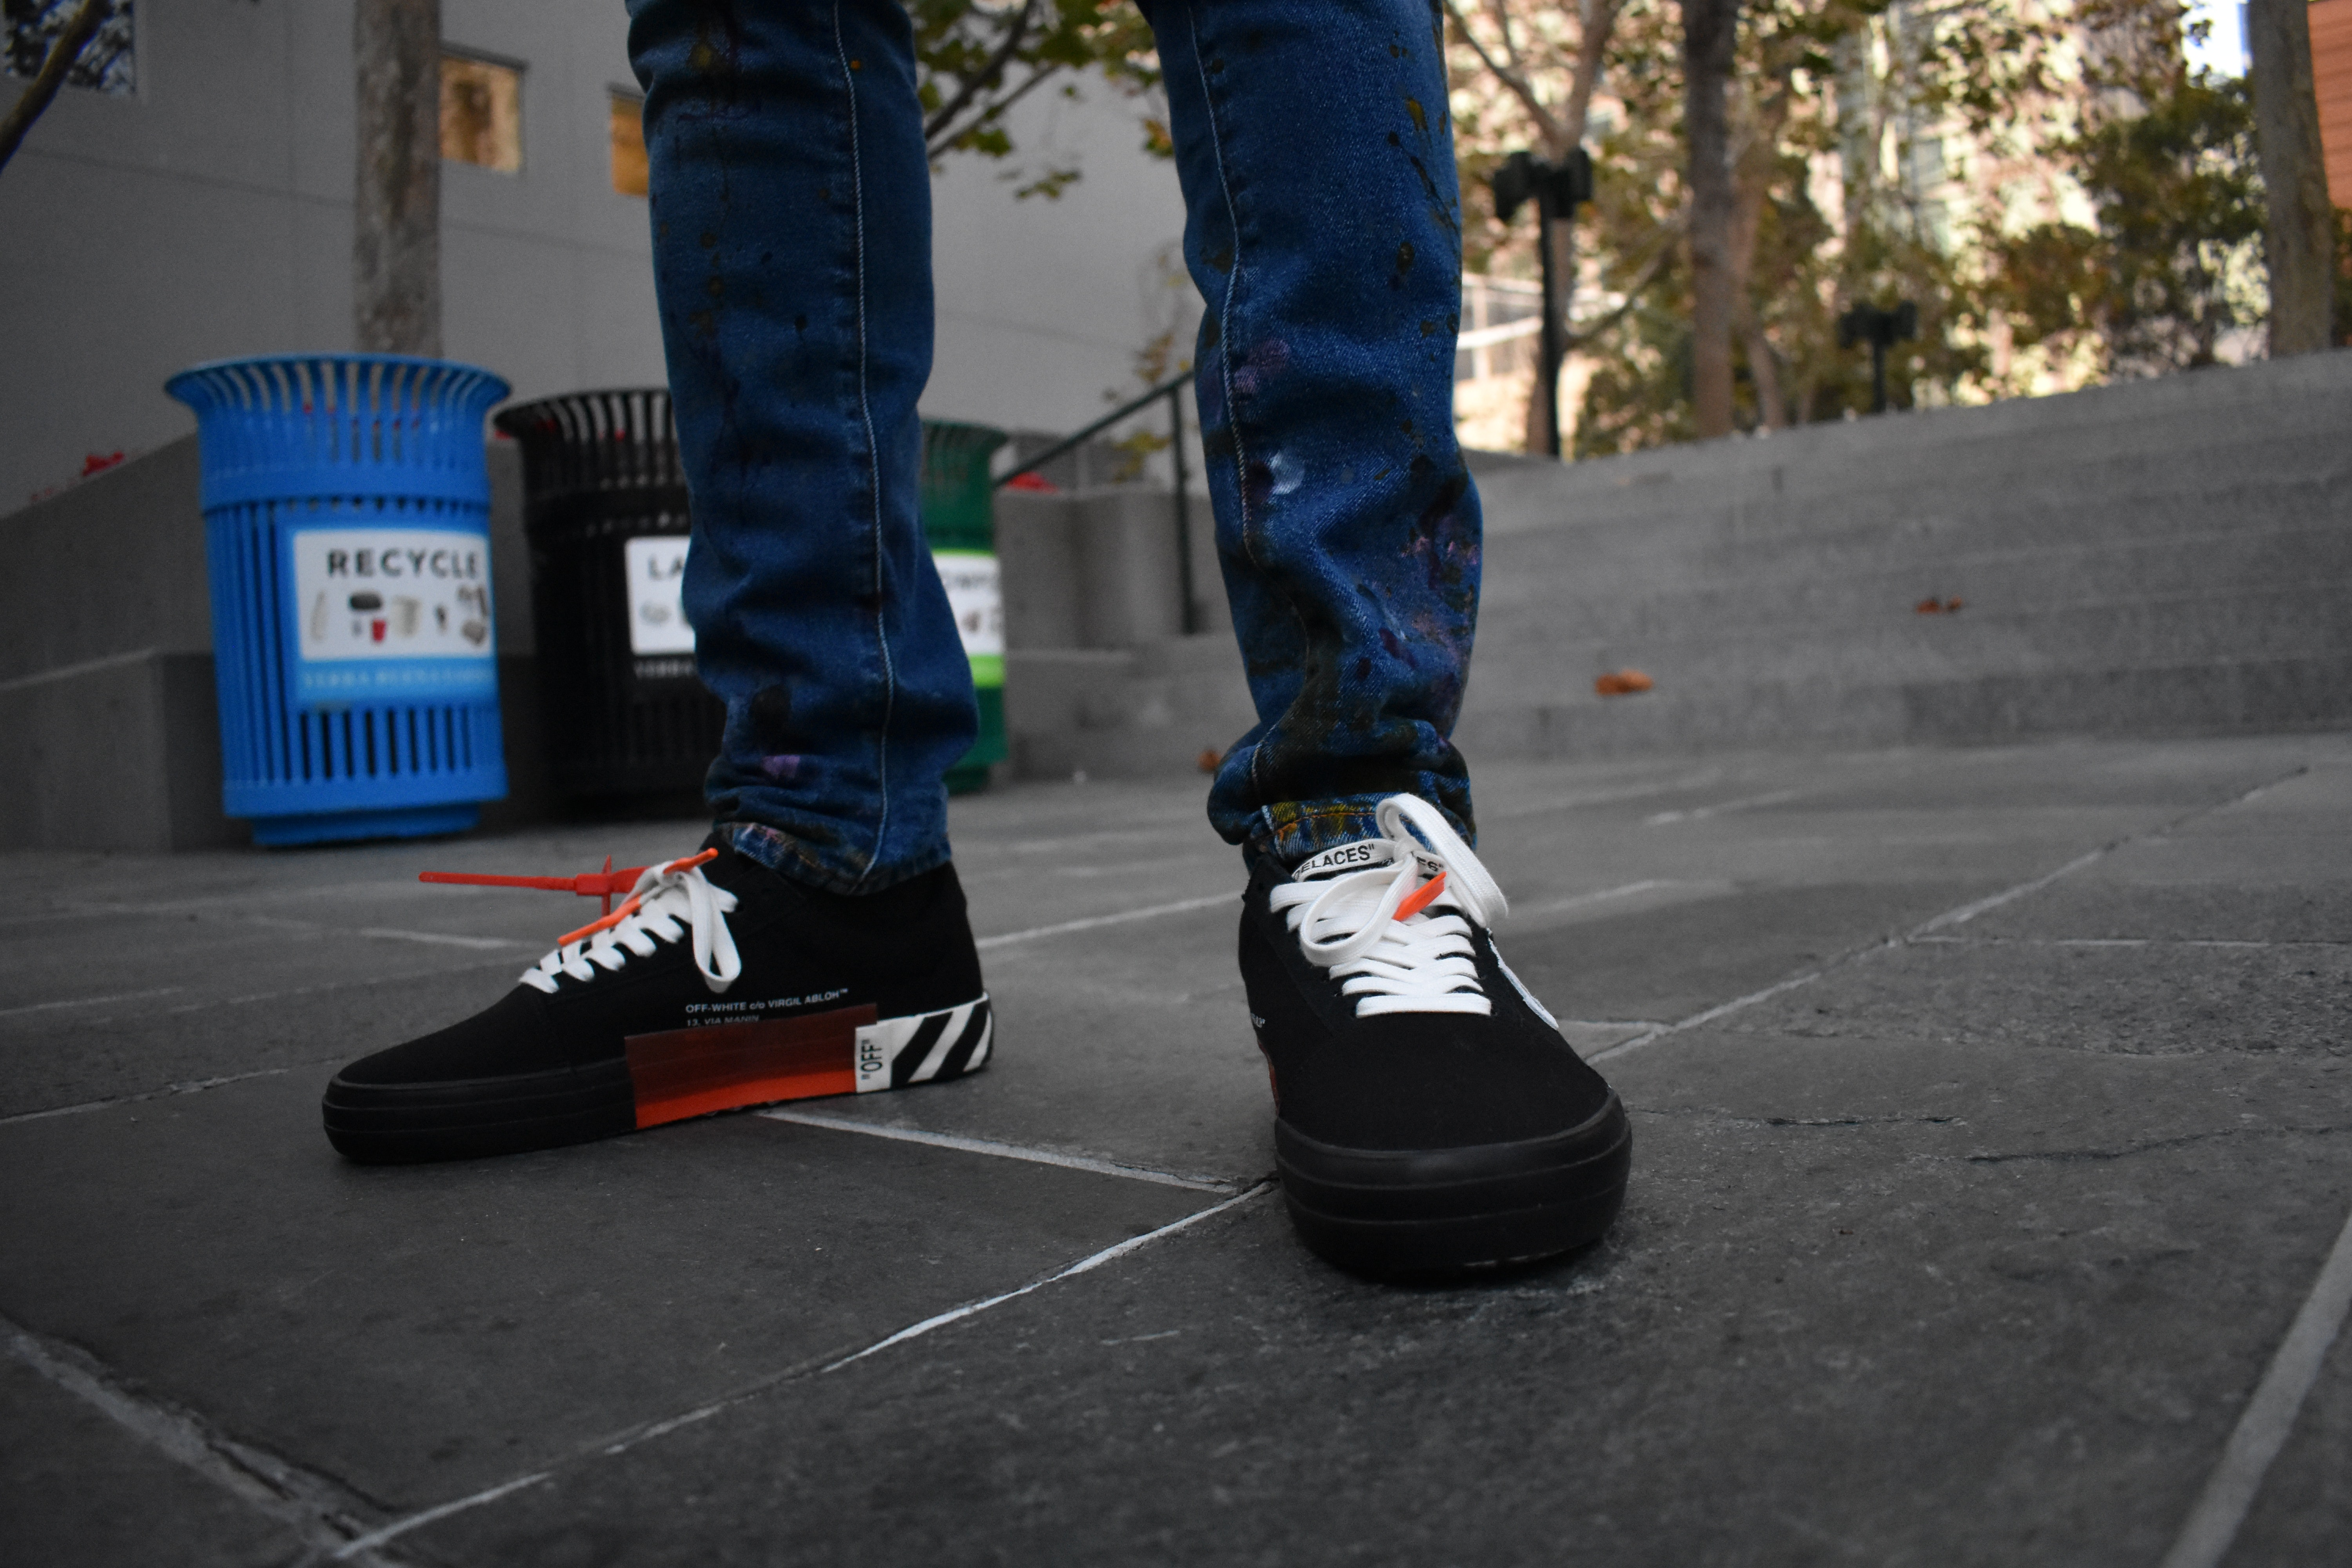 How To Use Roller Skate Shoes